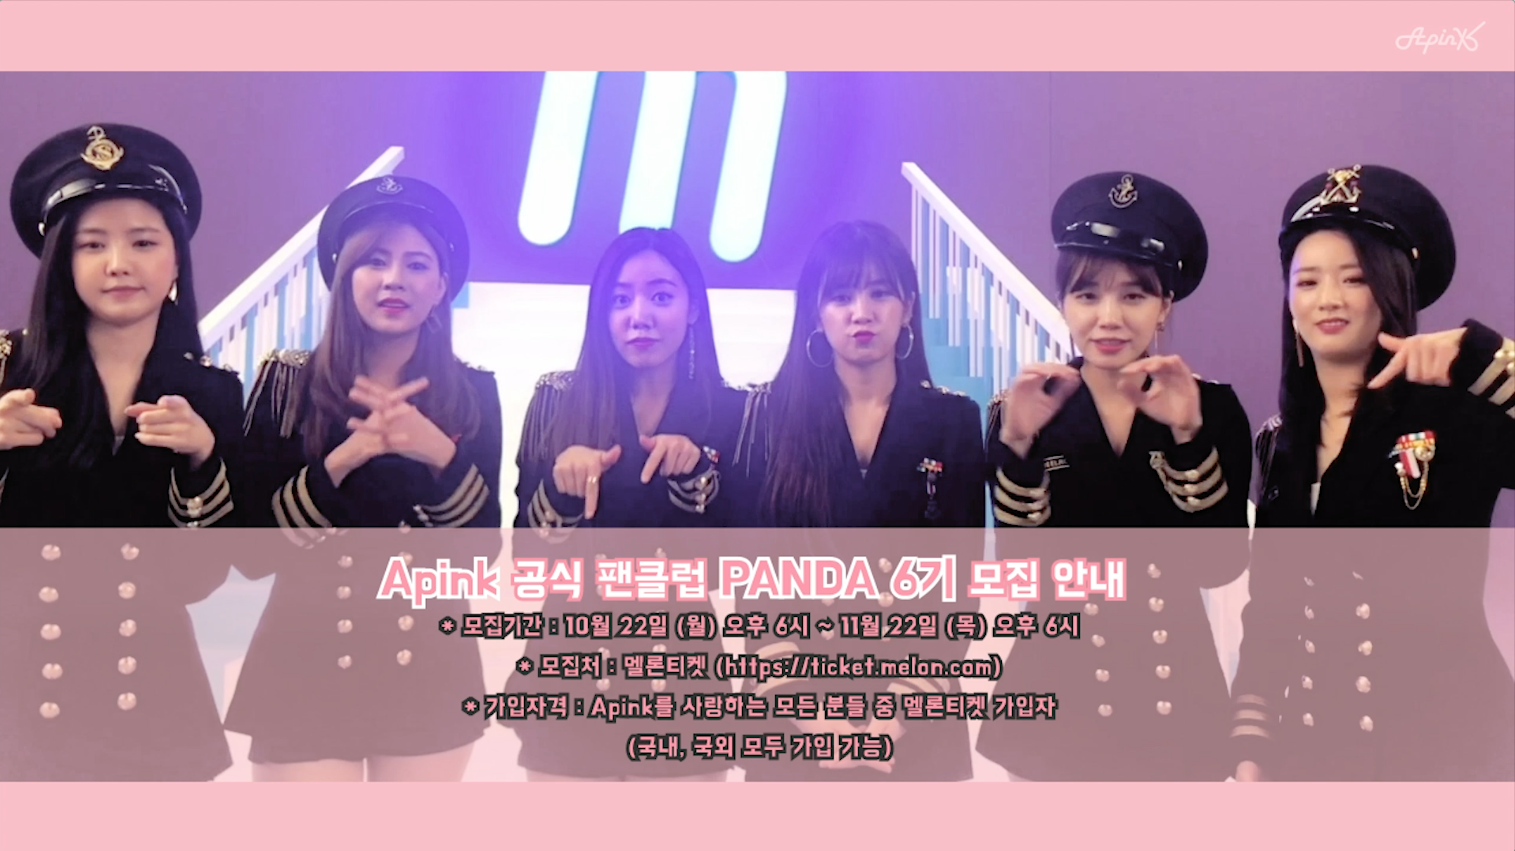 Apink Official Fan Club [PANDA] 6기 모집 영상